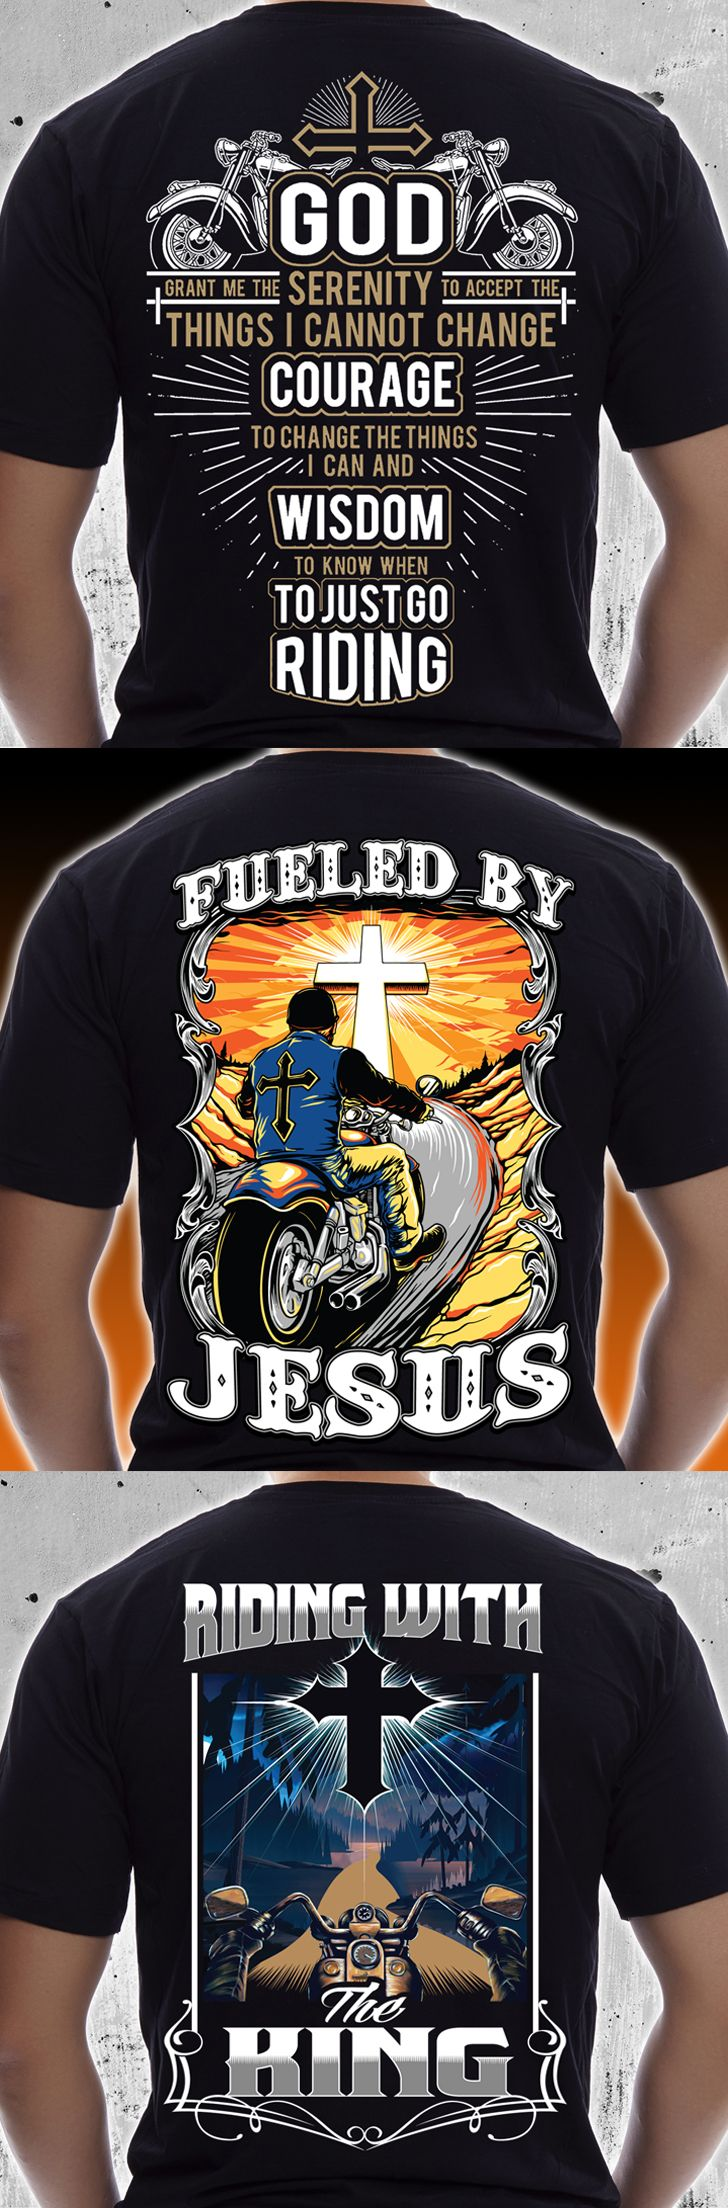 Awesome riding gear for Christian bikers! Check out this collection on t-shirts, hoodies, and more. Great Christmas gifts for bikers or motorcycle lovers.